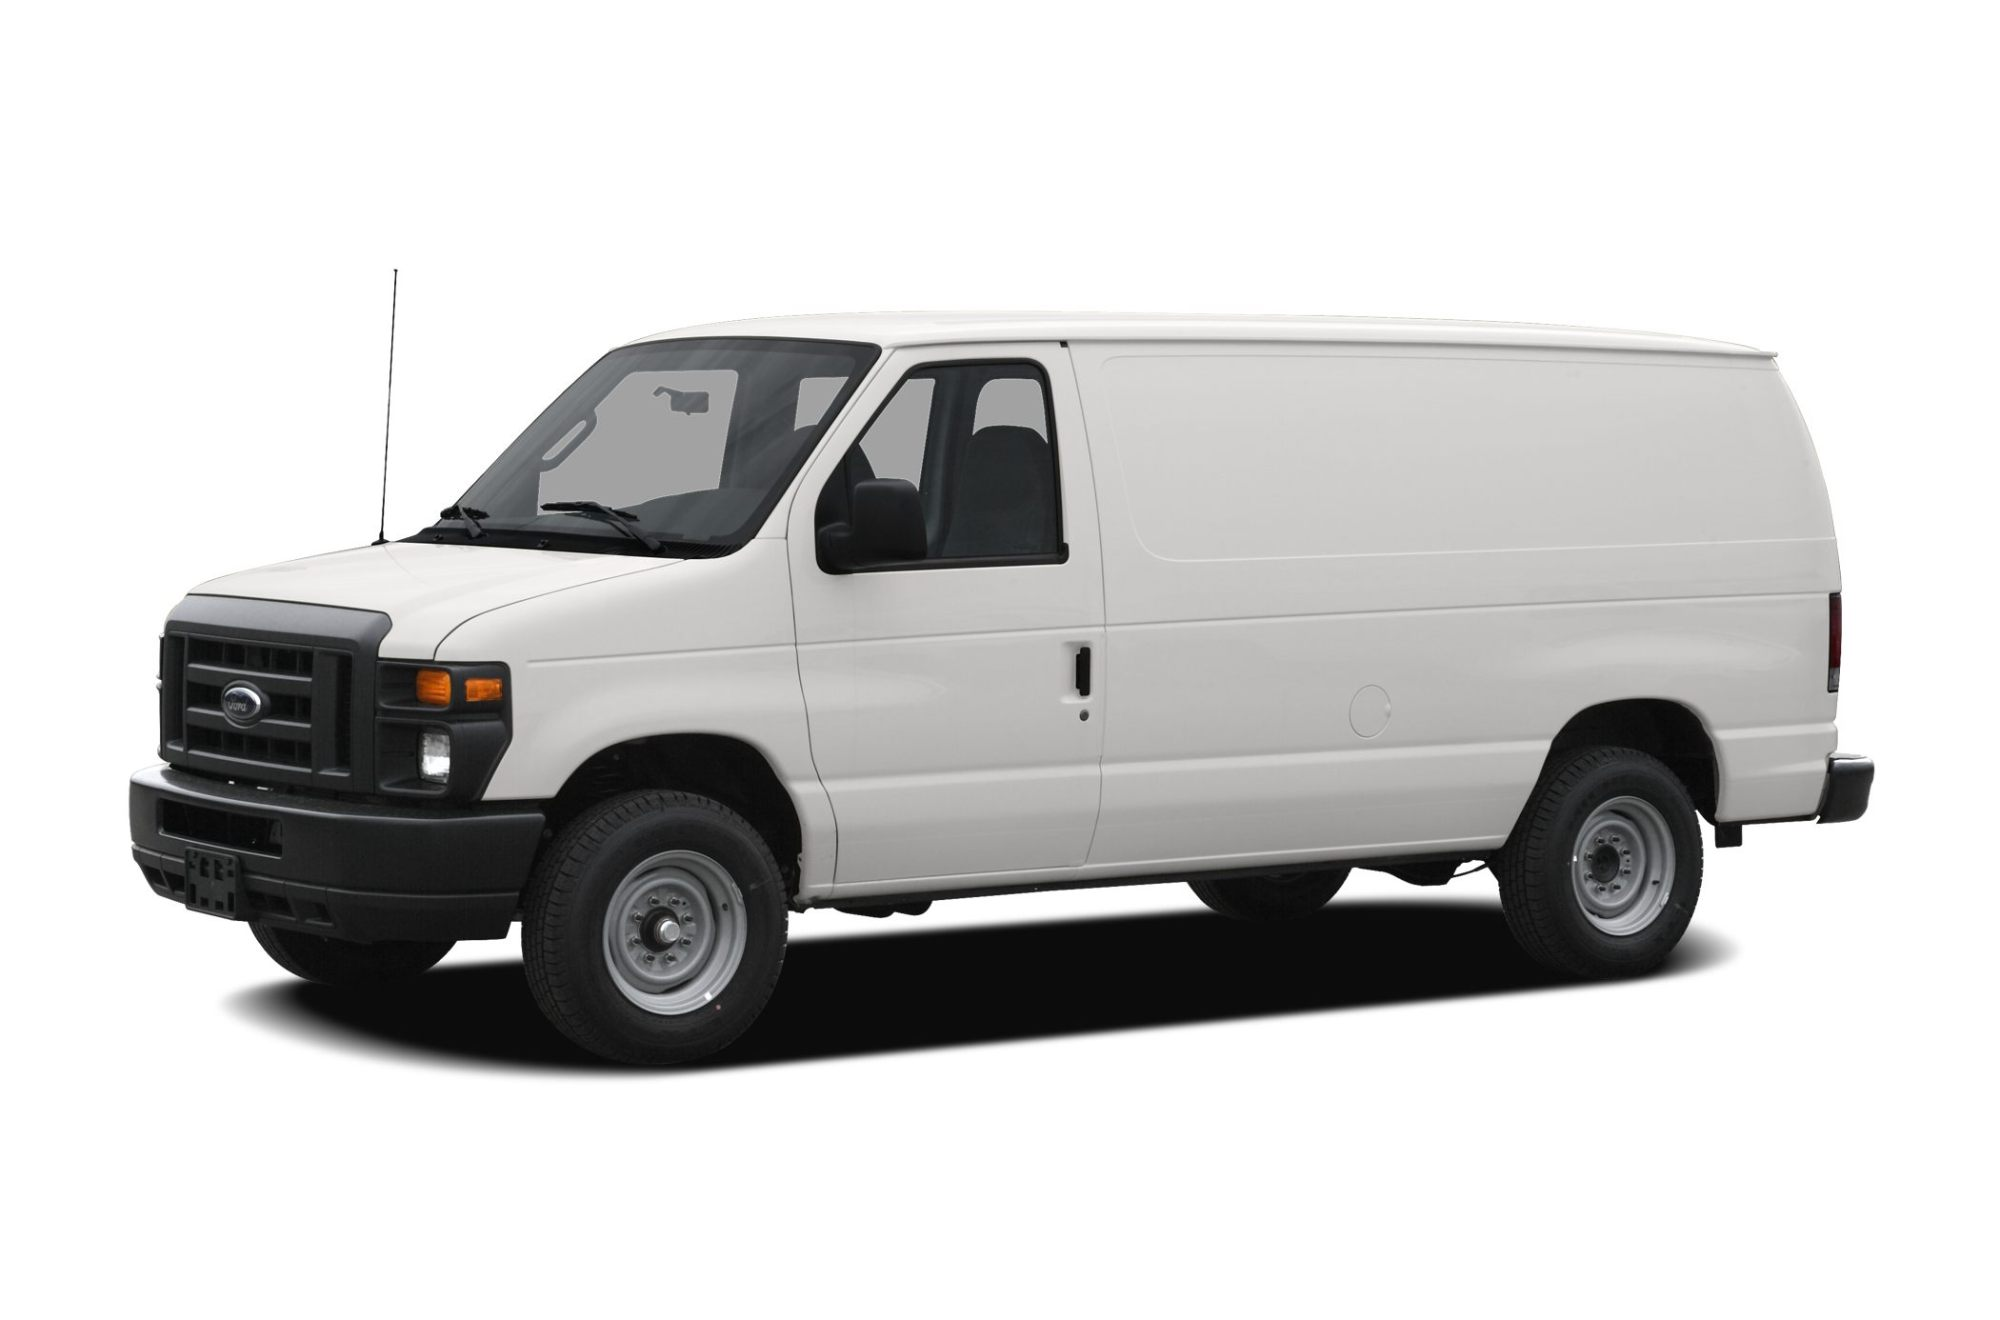 hight resolution of 2008 ford e350 body diagram wiring diagram 2008 ford e350 body diagram